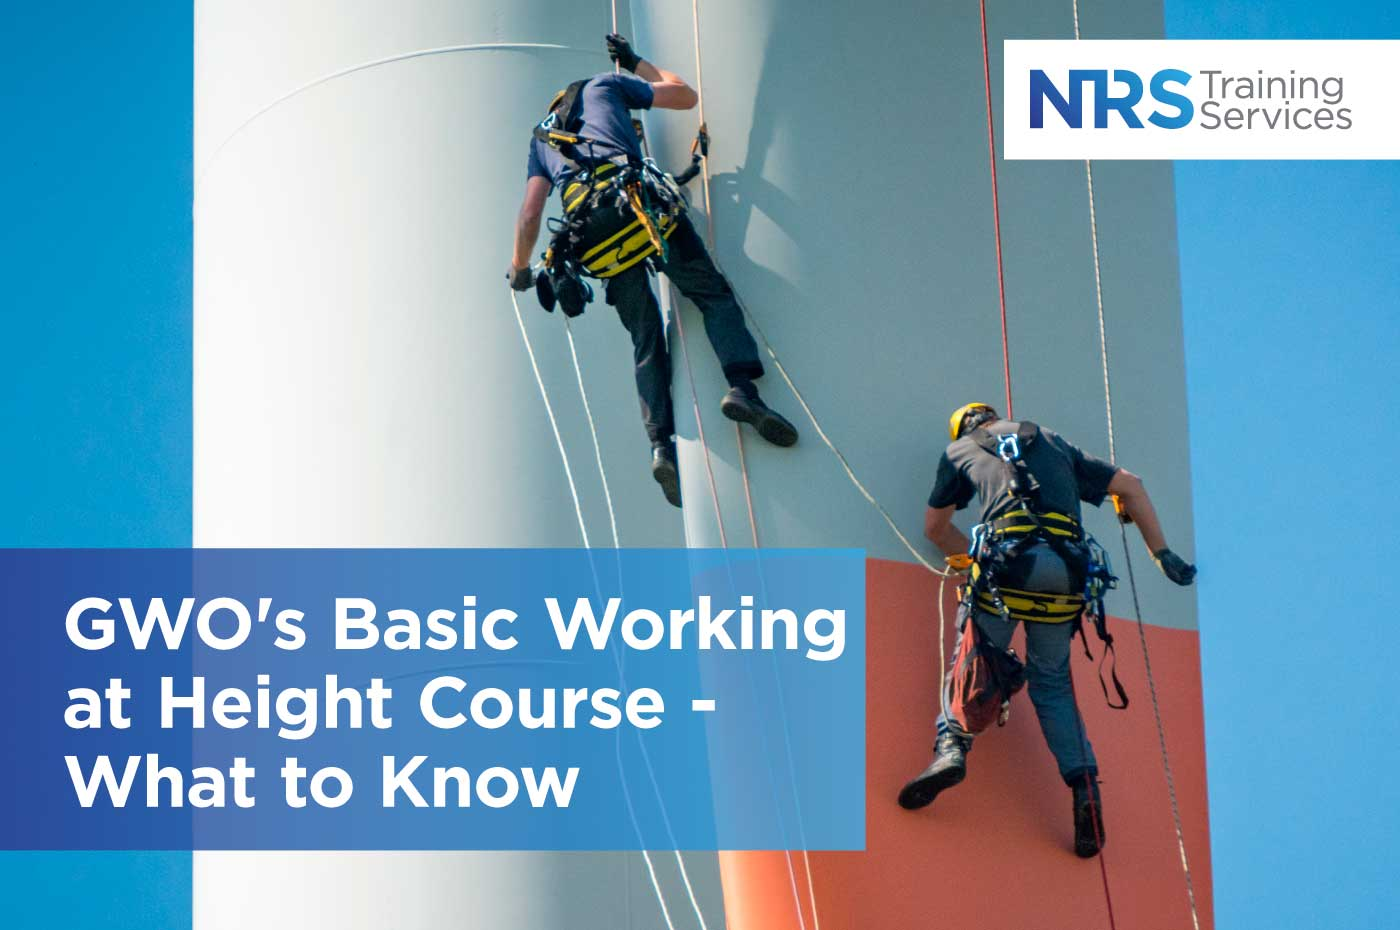 GWO's-Basic-Working-at-Height-Course